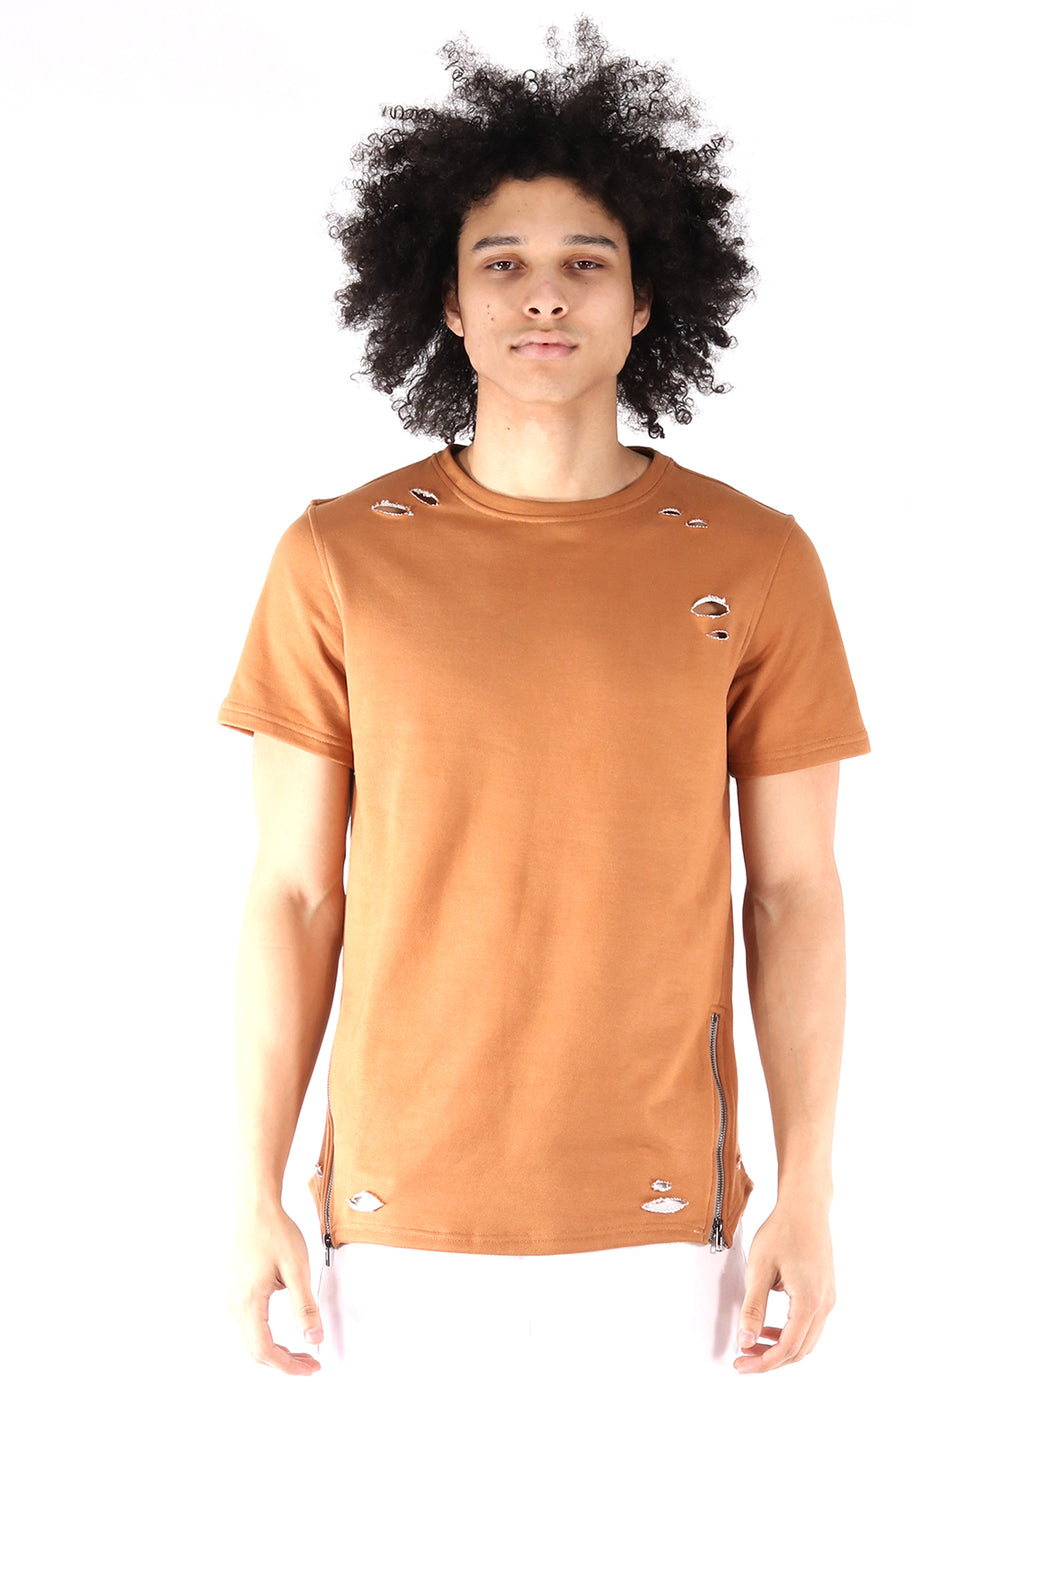 The SQZ Premium Cotton French Terry Tee in Timber (Sty HT-1010-Timber)